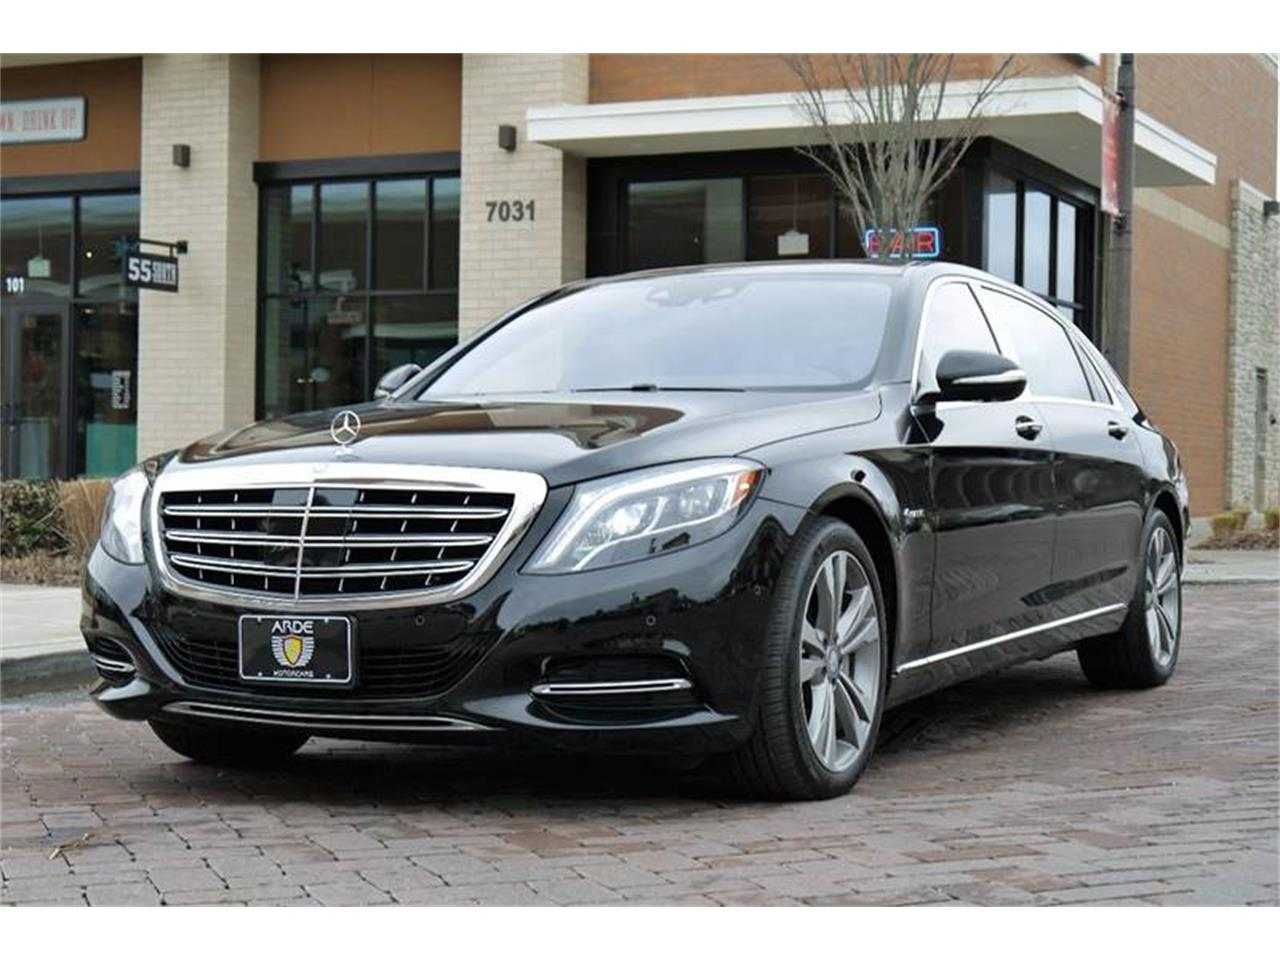 Large Picture of '17 Mercedes-Benz S-Class located in Brentwood Tennessee - MOD1